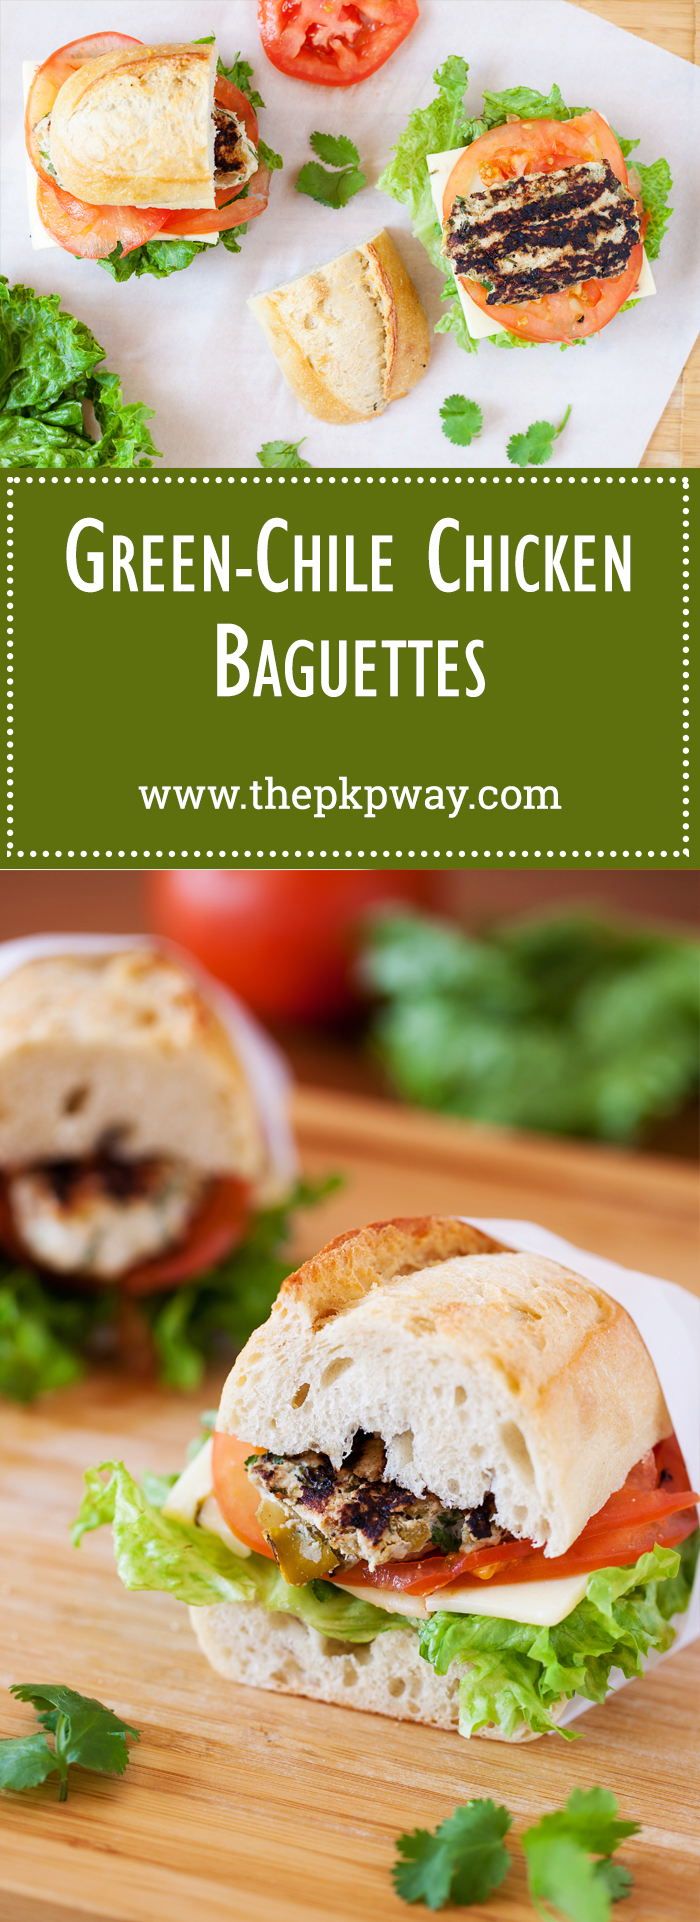 These Green-Chile Chicken Baguettes aren't your regular grilled chicken sandwich. They're loaded with green chilies and cilantro that make for an uber tasty and flavorful patty that's suitable in between a baguette or bun!